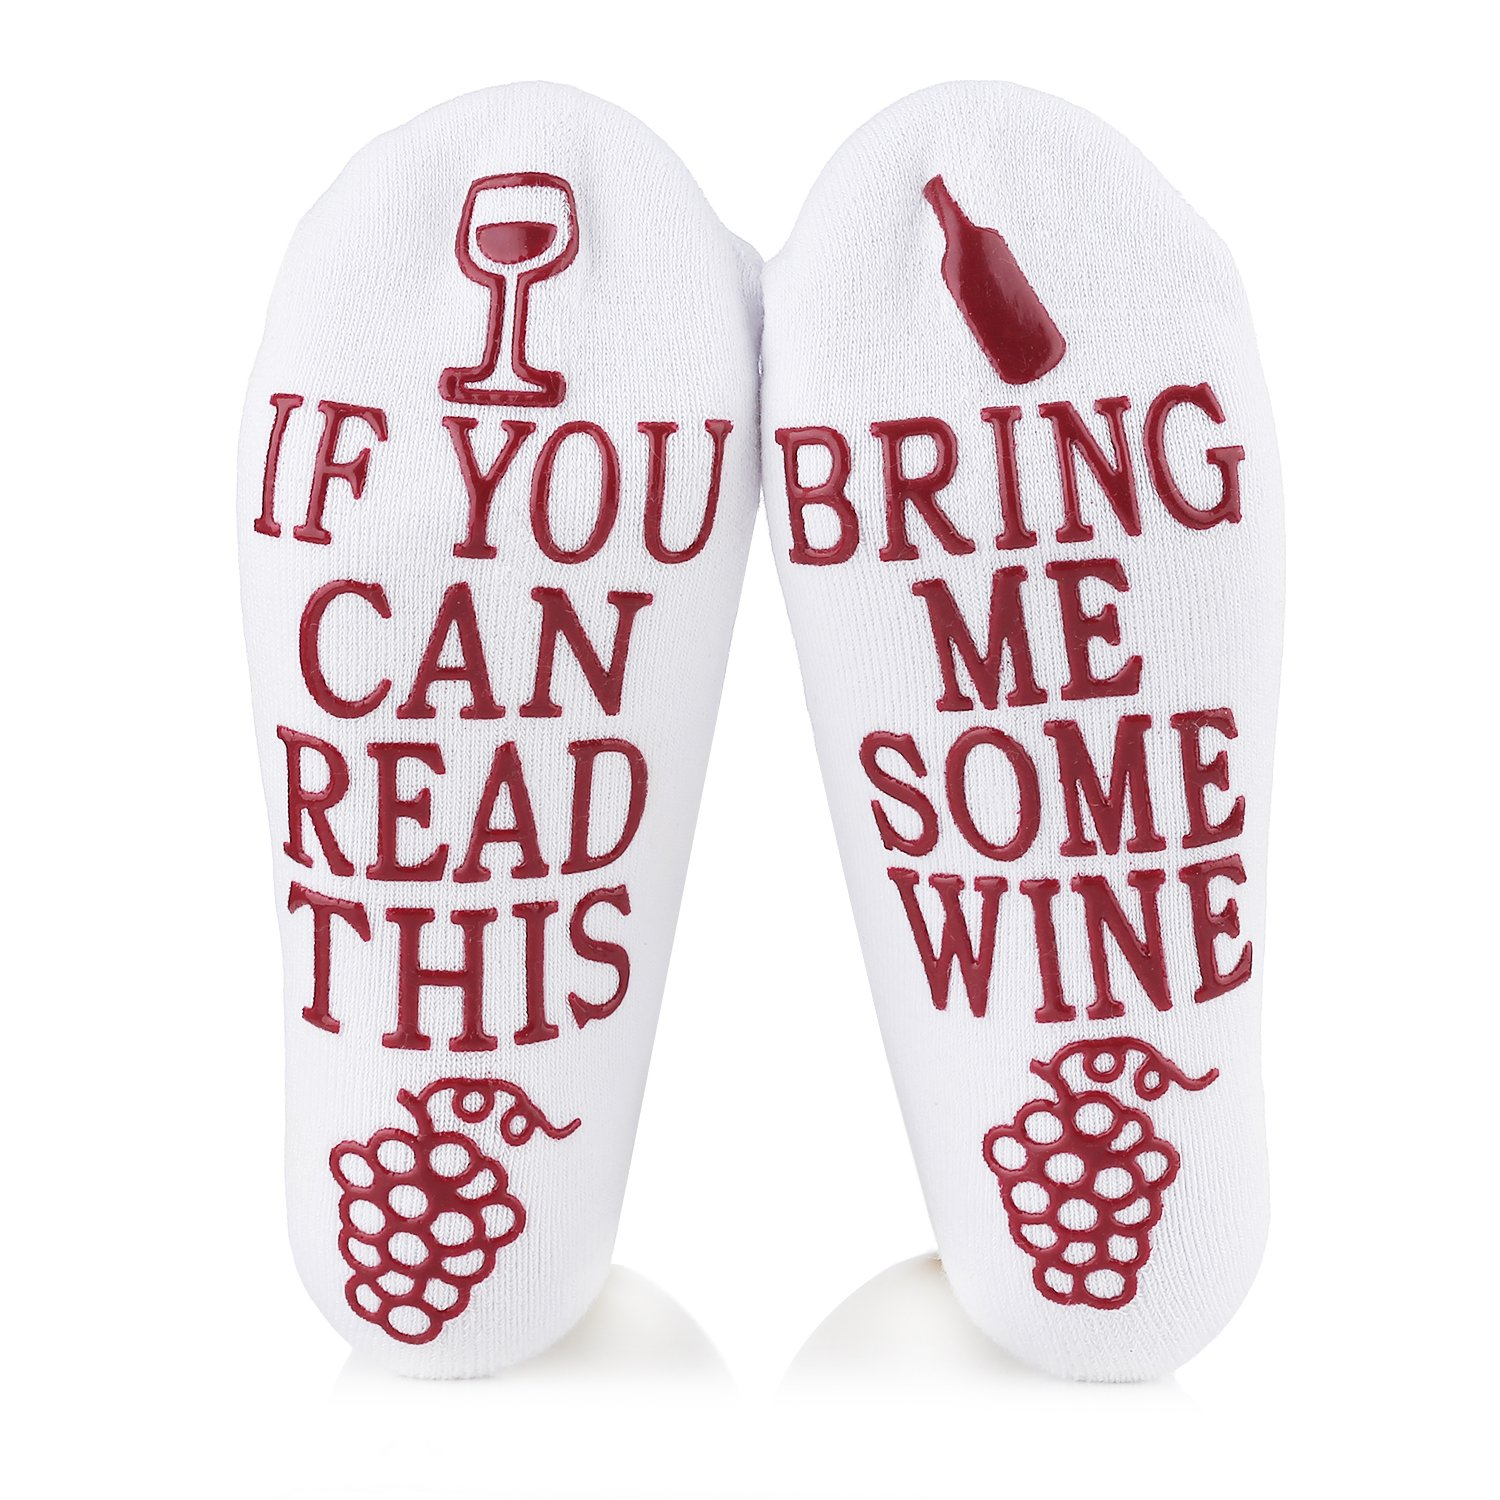 Wine Socks With Funny Words If You Can Read This,Cupcake Gift Packaging,Valentine's Day,Mother's Day,Christmas Day,Birthday,Anniversary,Gifts for Women,Mom,Her,Wife,Sister,Friends,Teacher